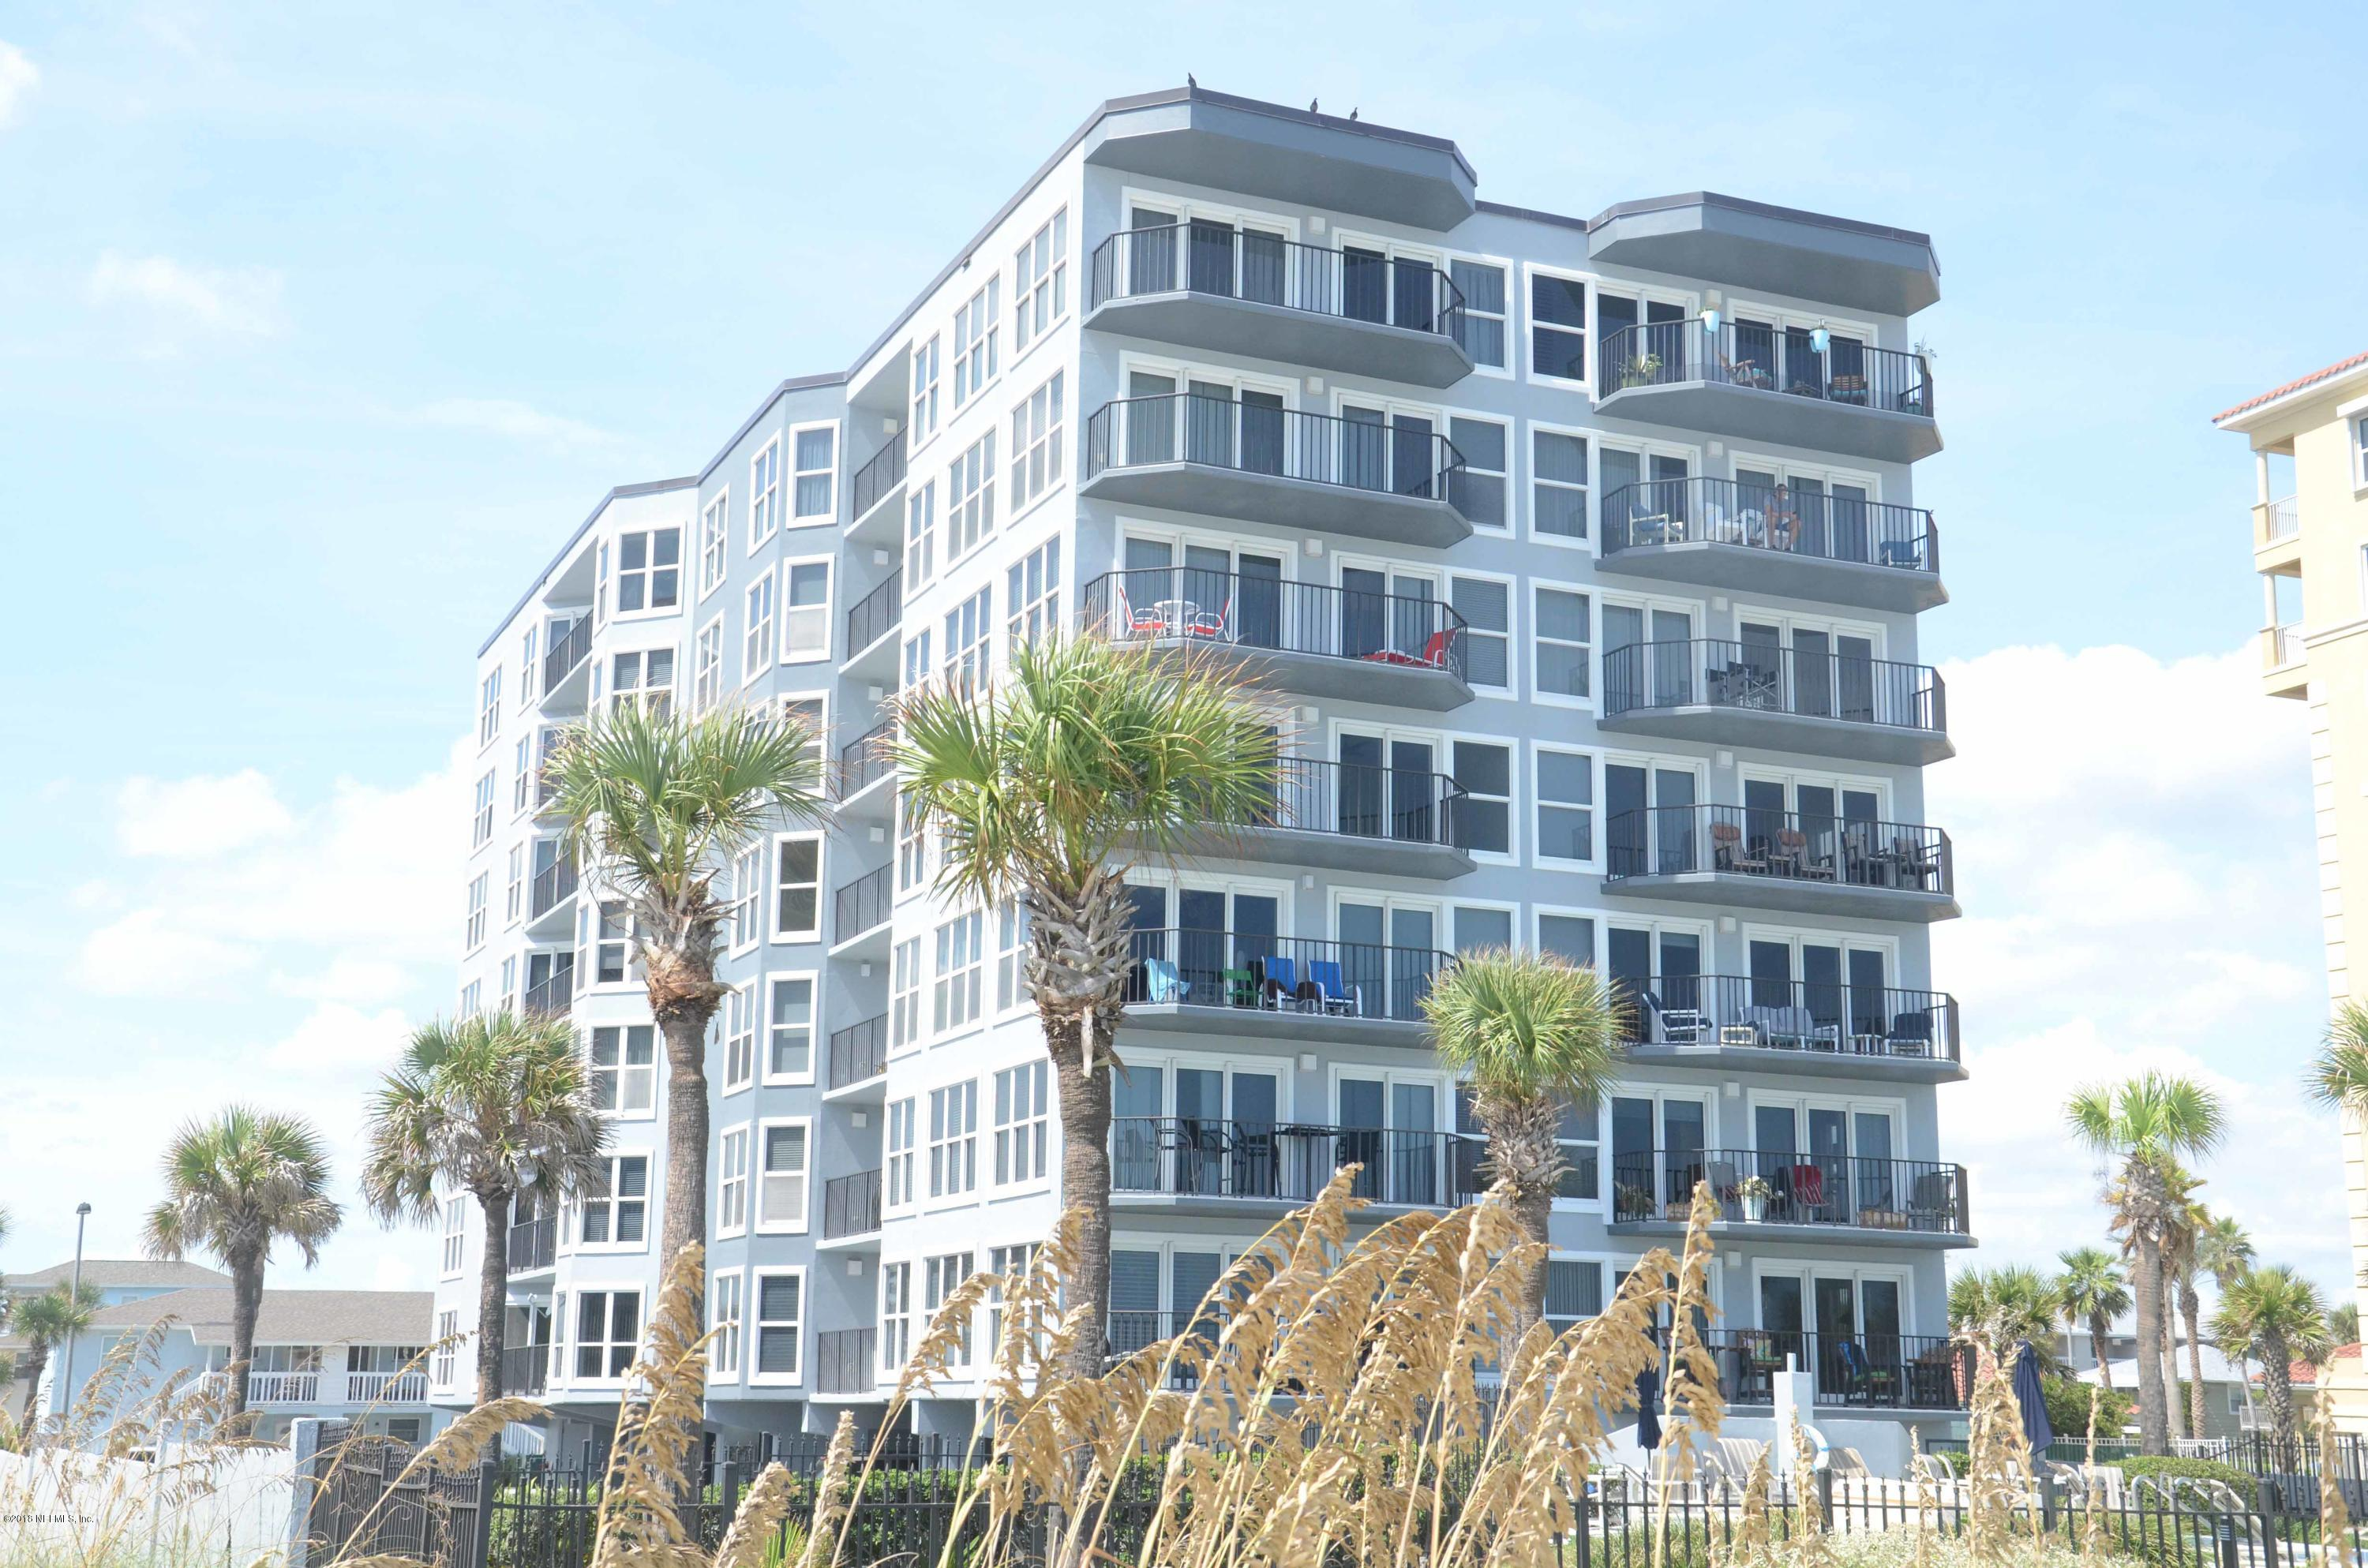 1551 1ST, JACKSONVILLE BEACH, FLORIDA 32250, 3 Bedrooms Bedrooms, ,2 BathroomsBathrooms,Residential - condos/townhomes,For sale,1ST,960246